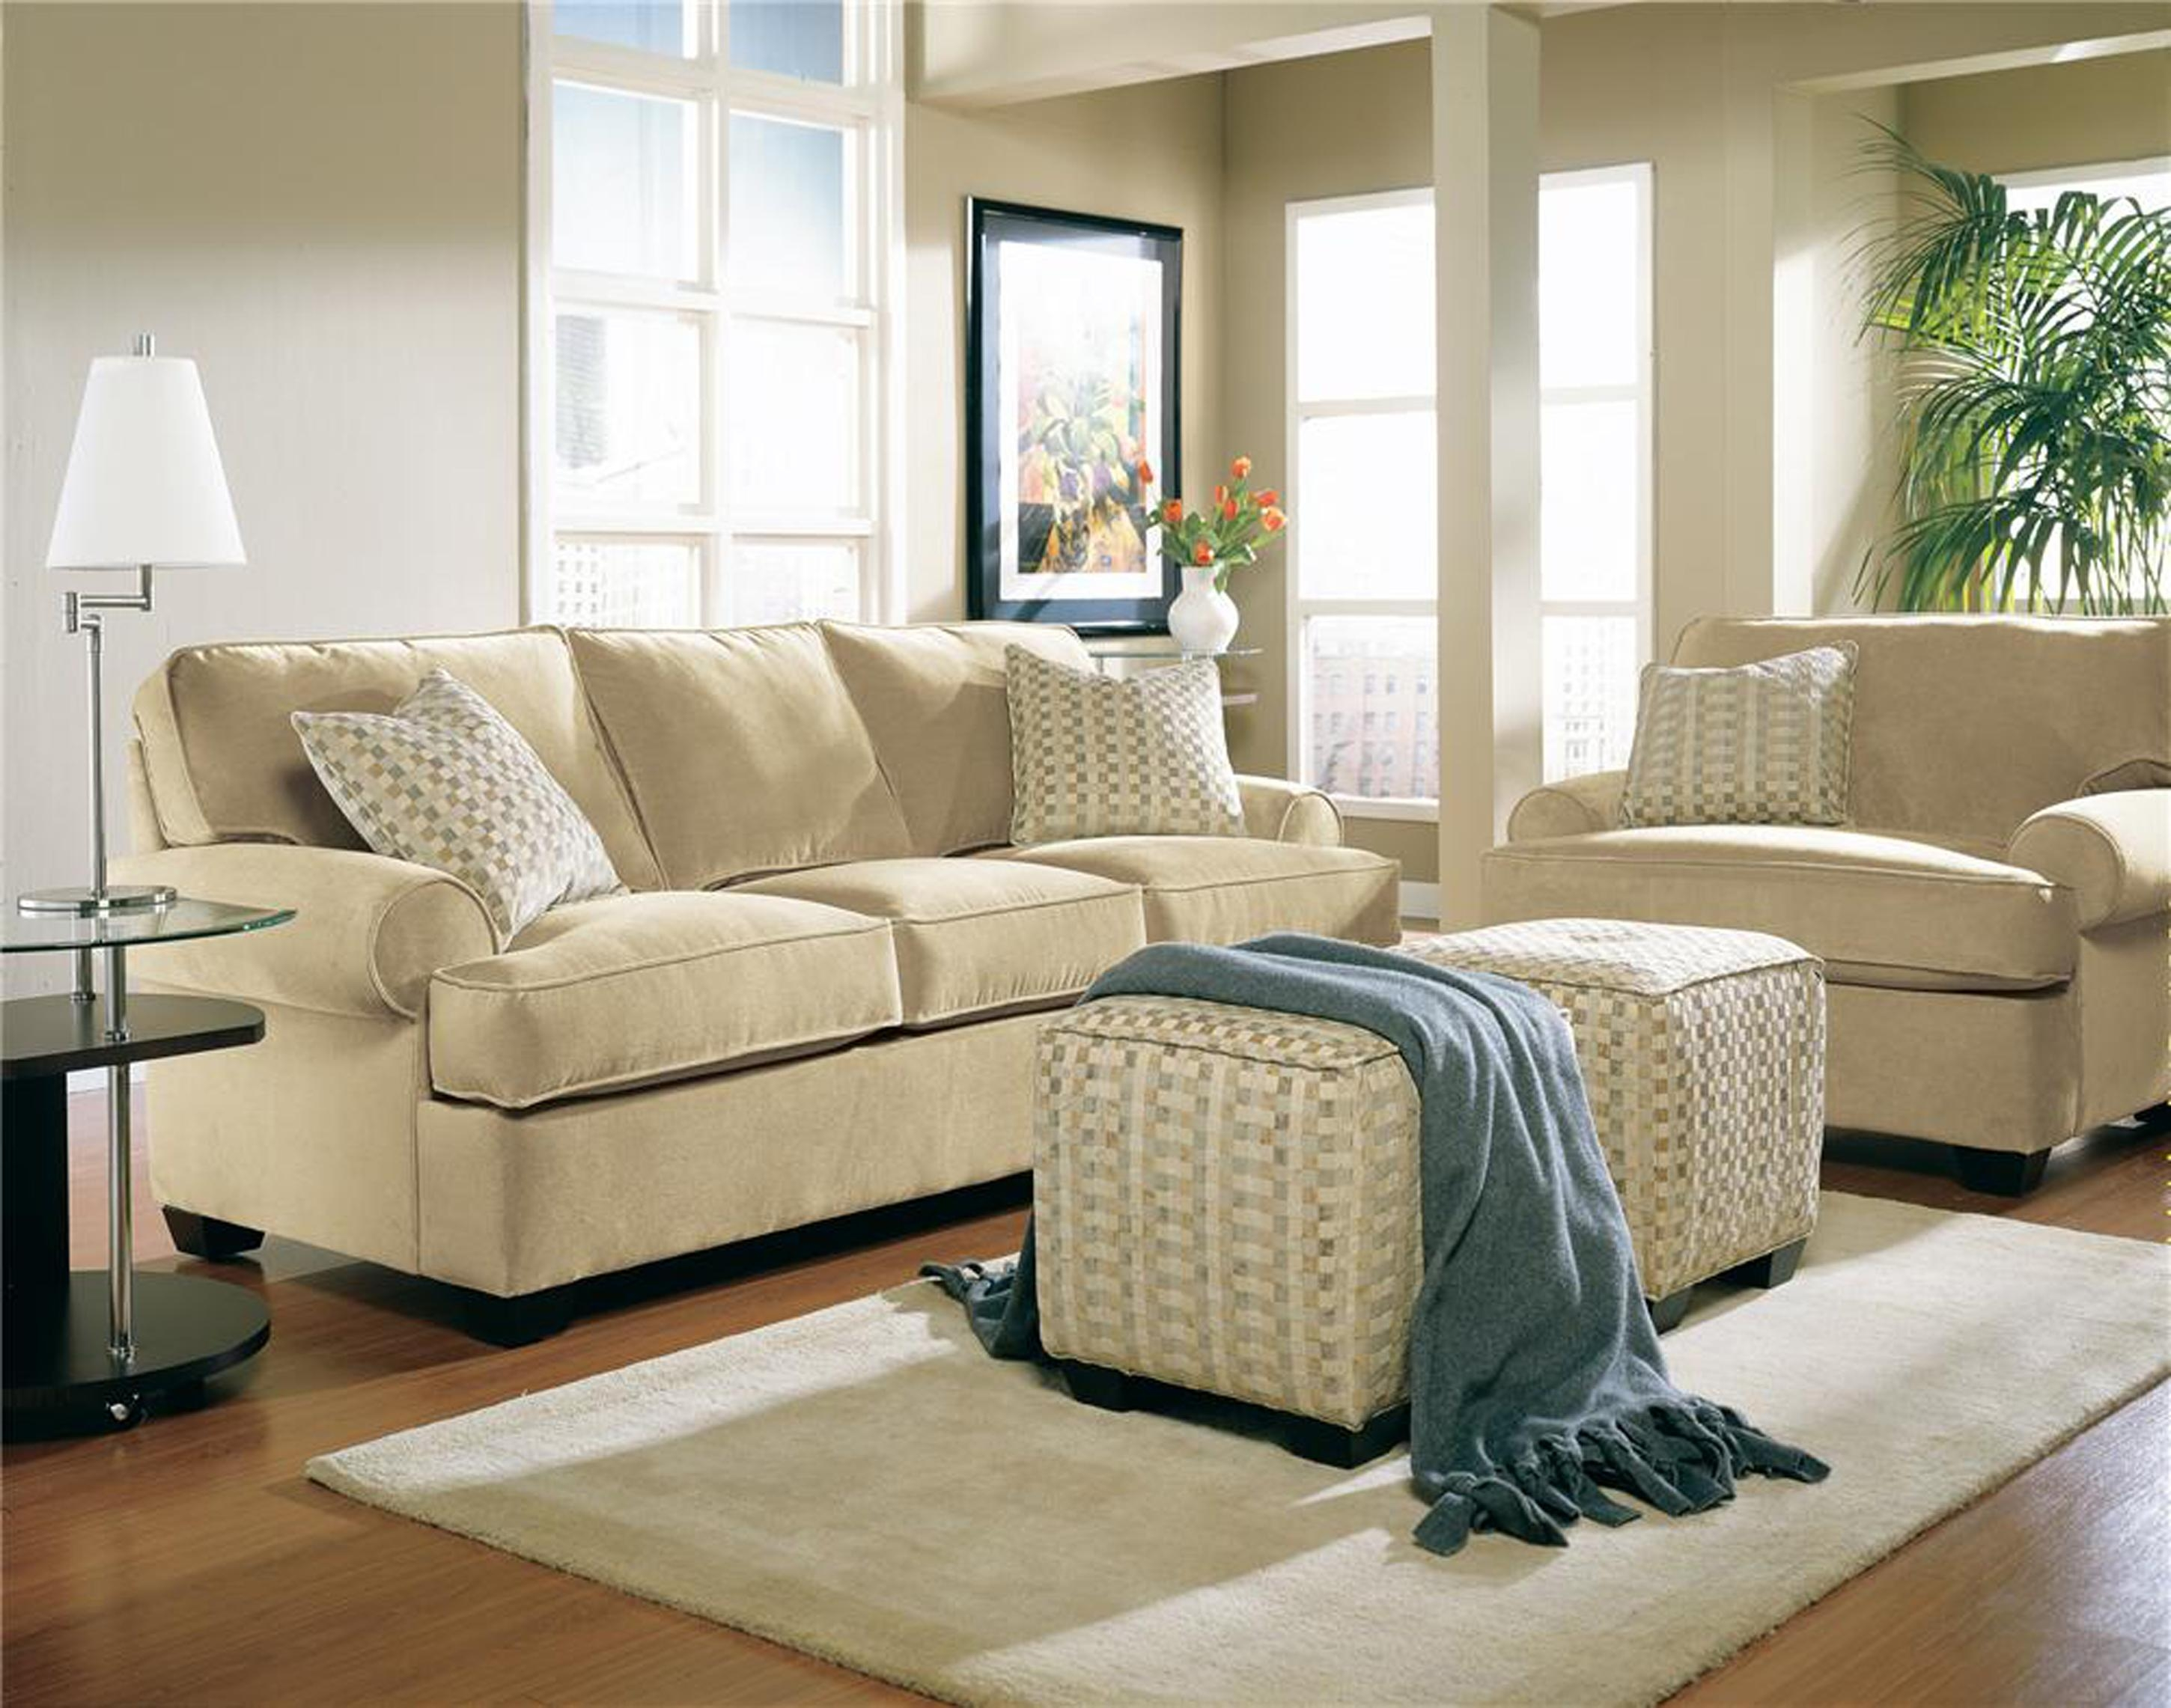 Cream Living Room Furniture – Living Room Within Cream Colored Sofas (View 17 of 20)